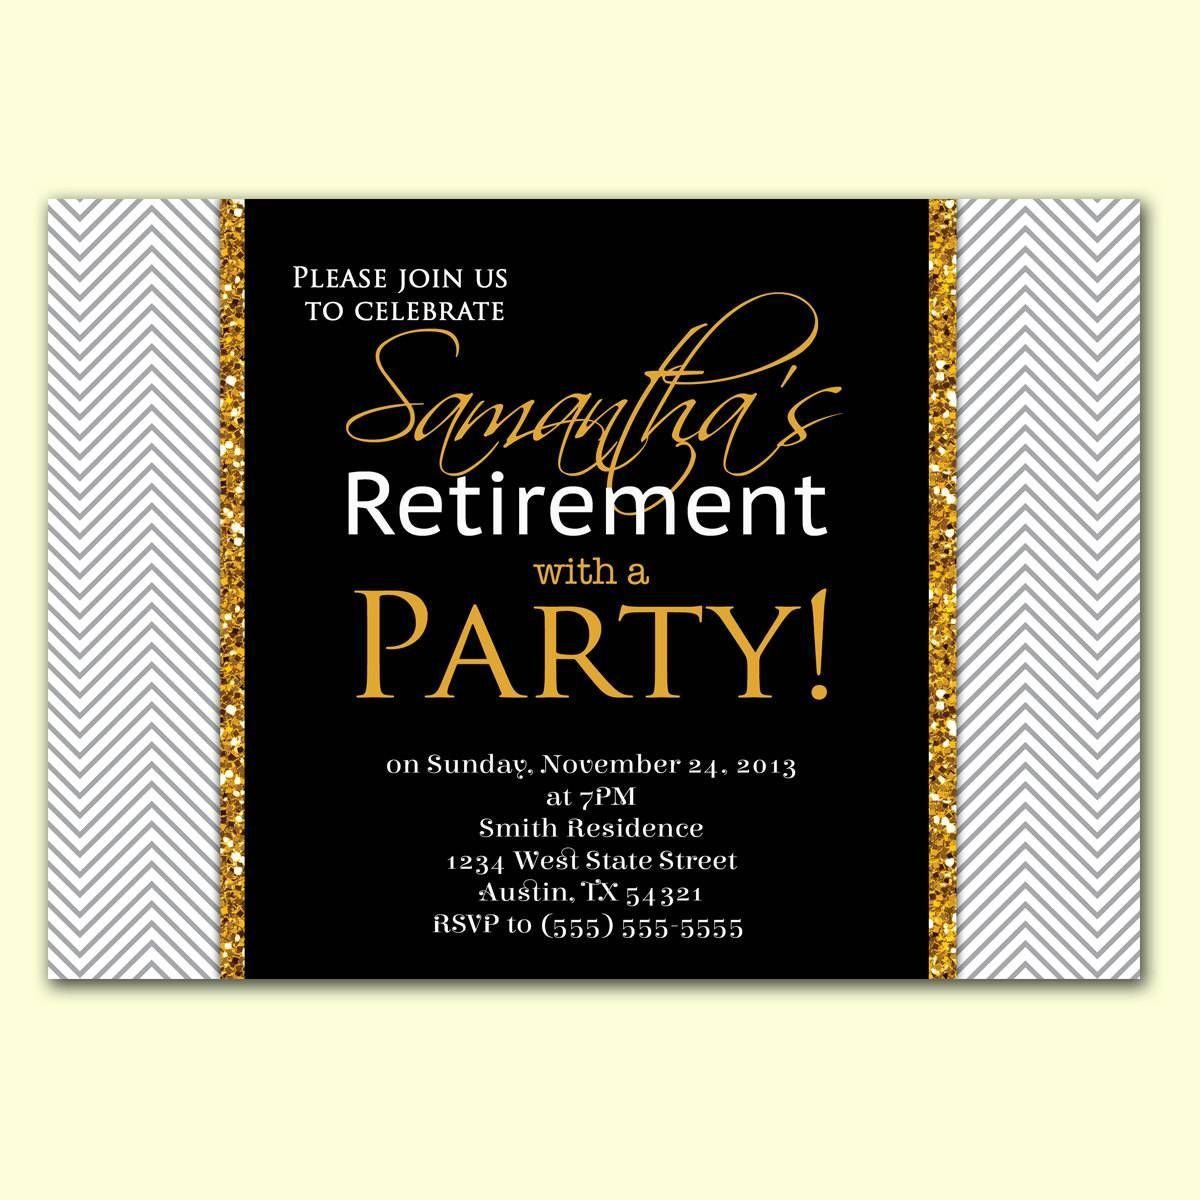 001 Stirring Retirement Party Invitation Template High Resolution  Templates For Free Nurse M WordFull